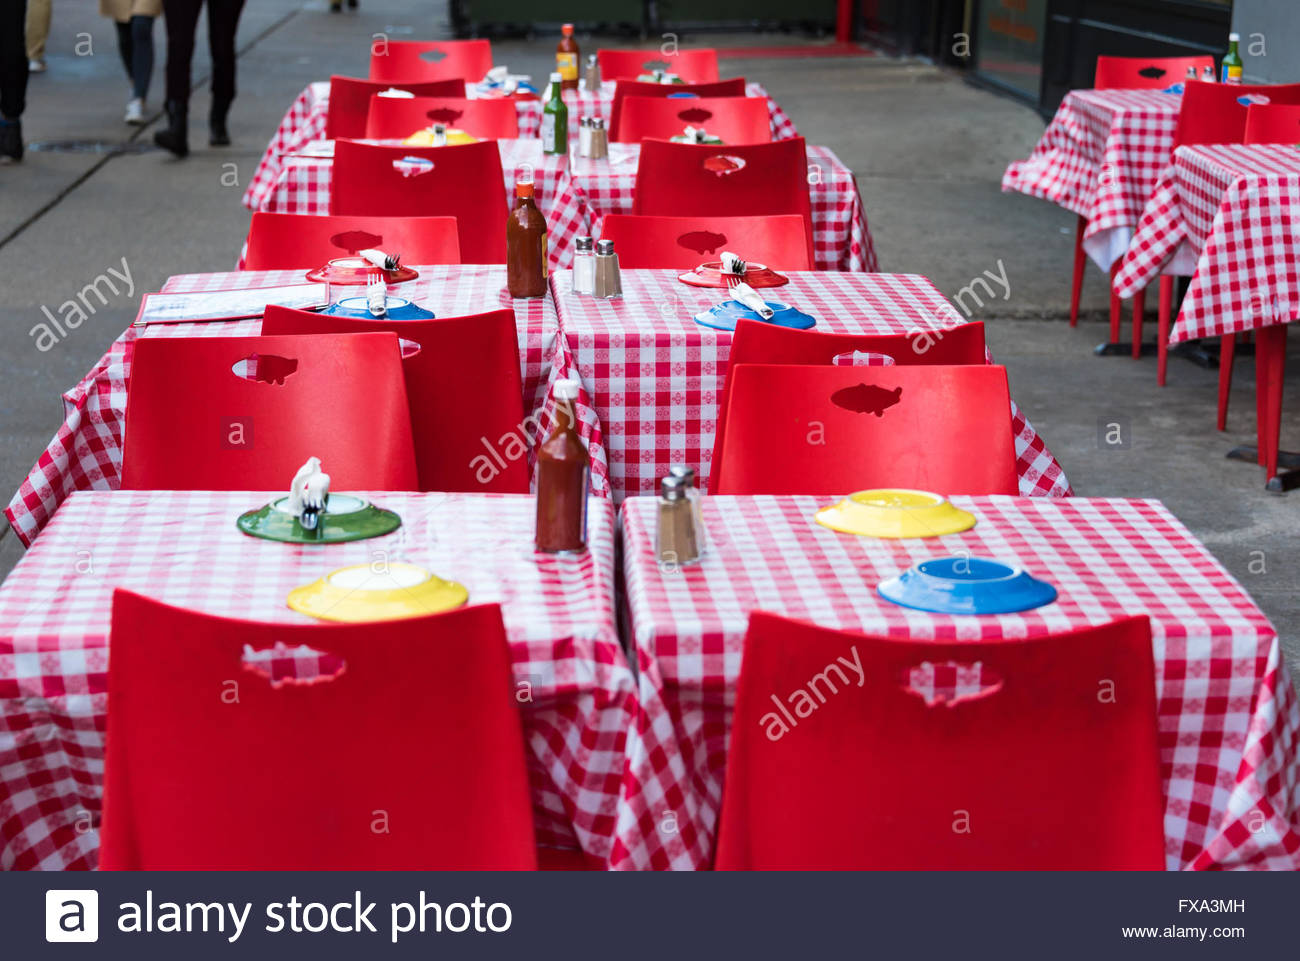 Outdoors Restaurant With Red And White Stripes Table Cloth And Red Stock Photo Alamy